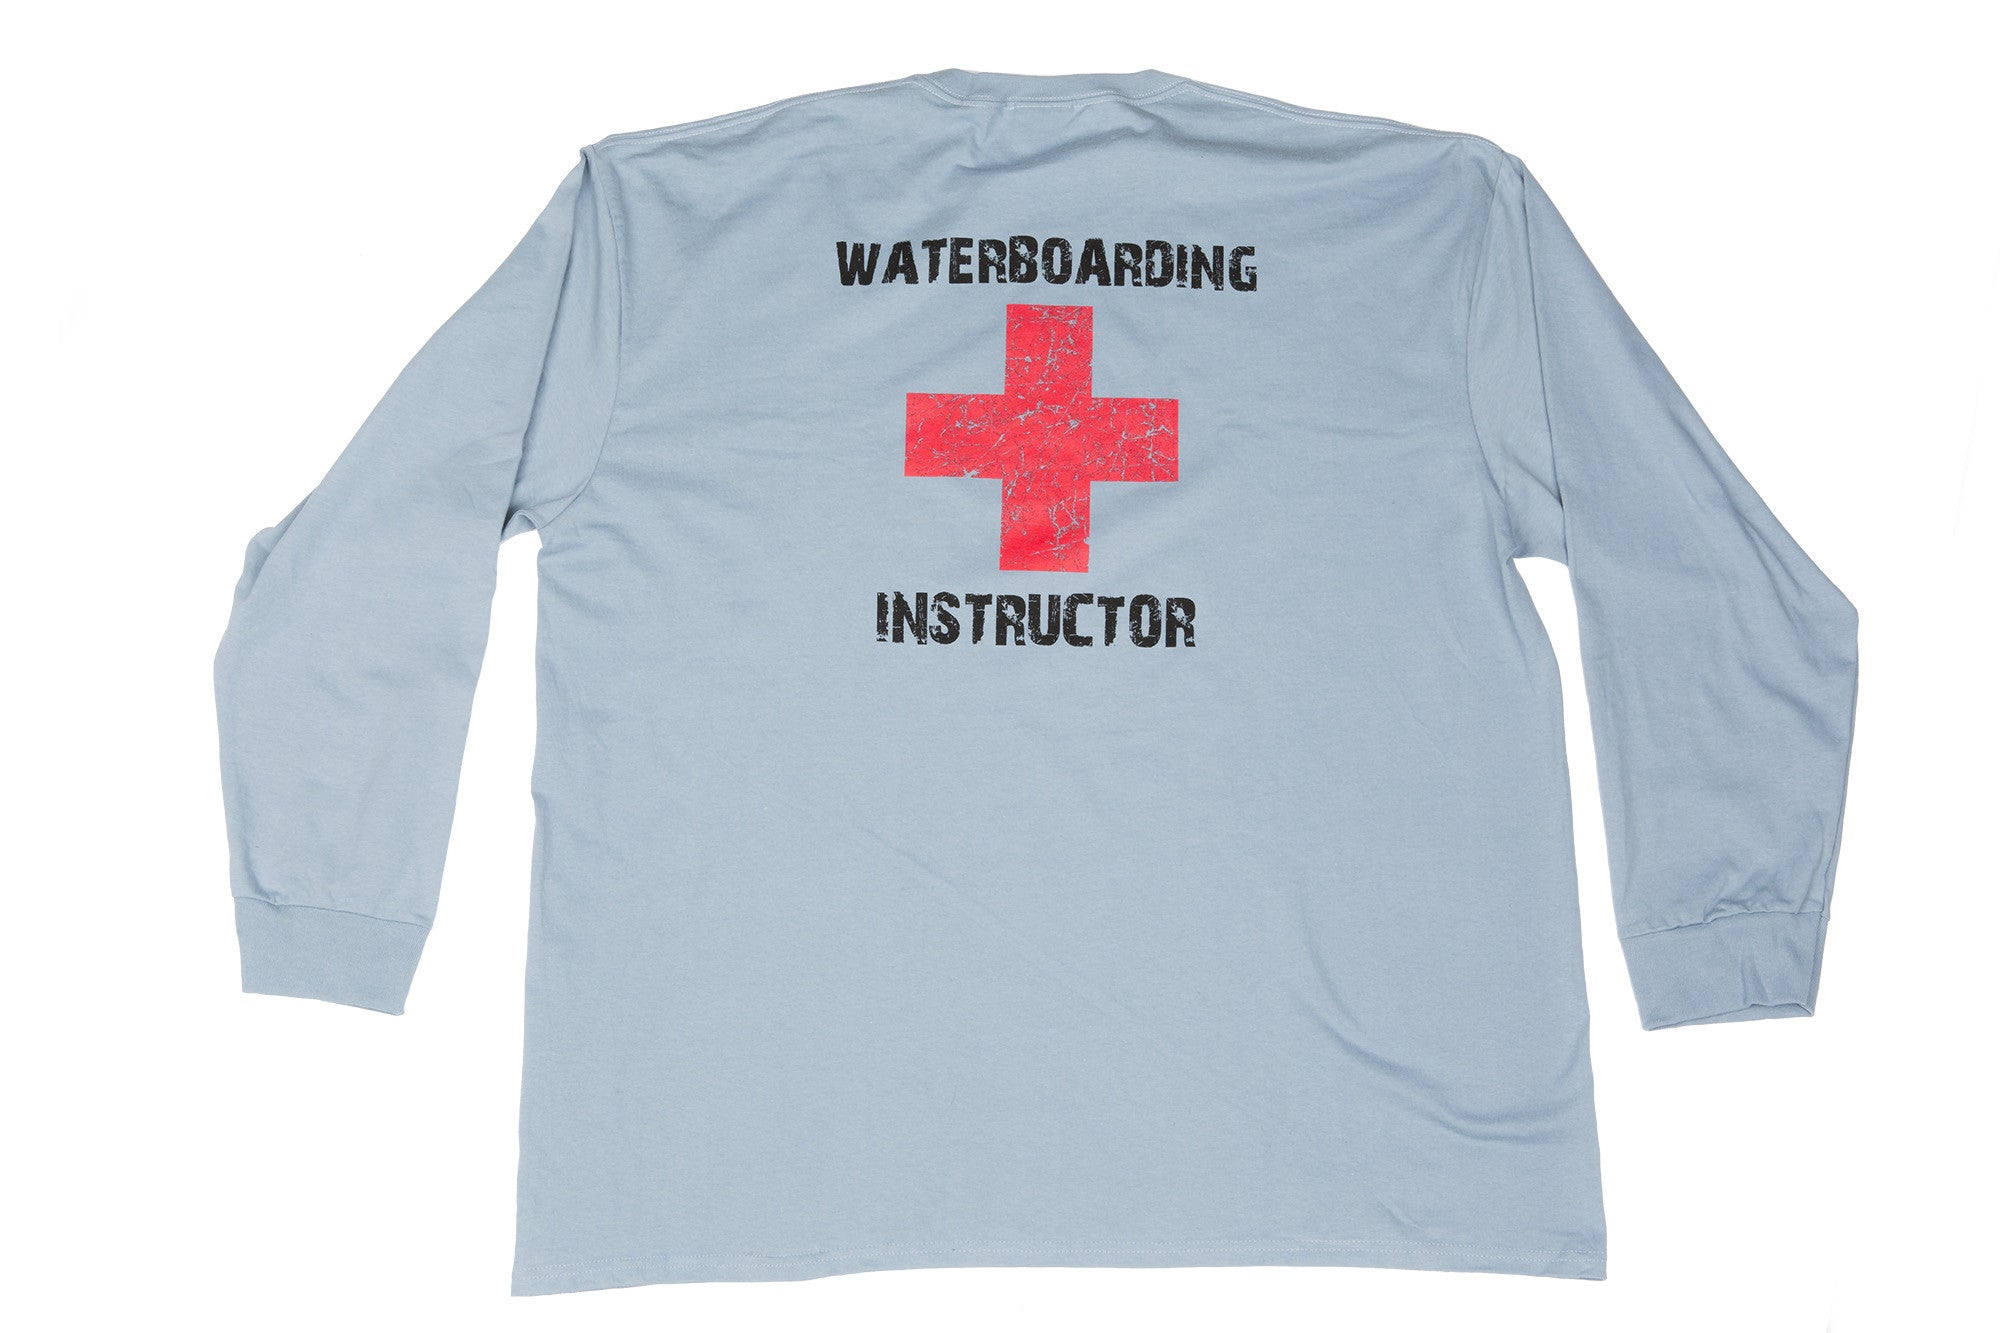 Waterboarding Instructor Long Sleeve